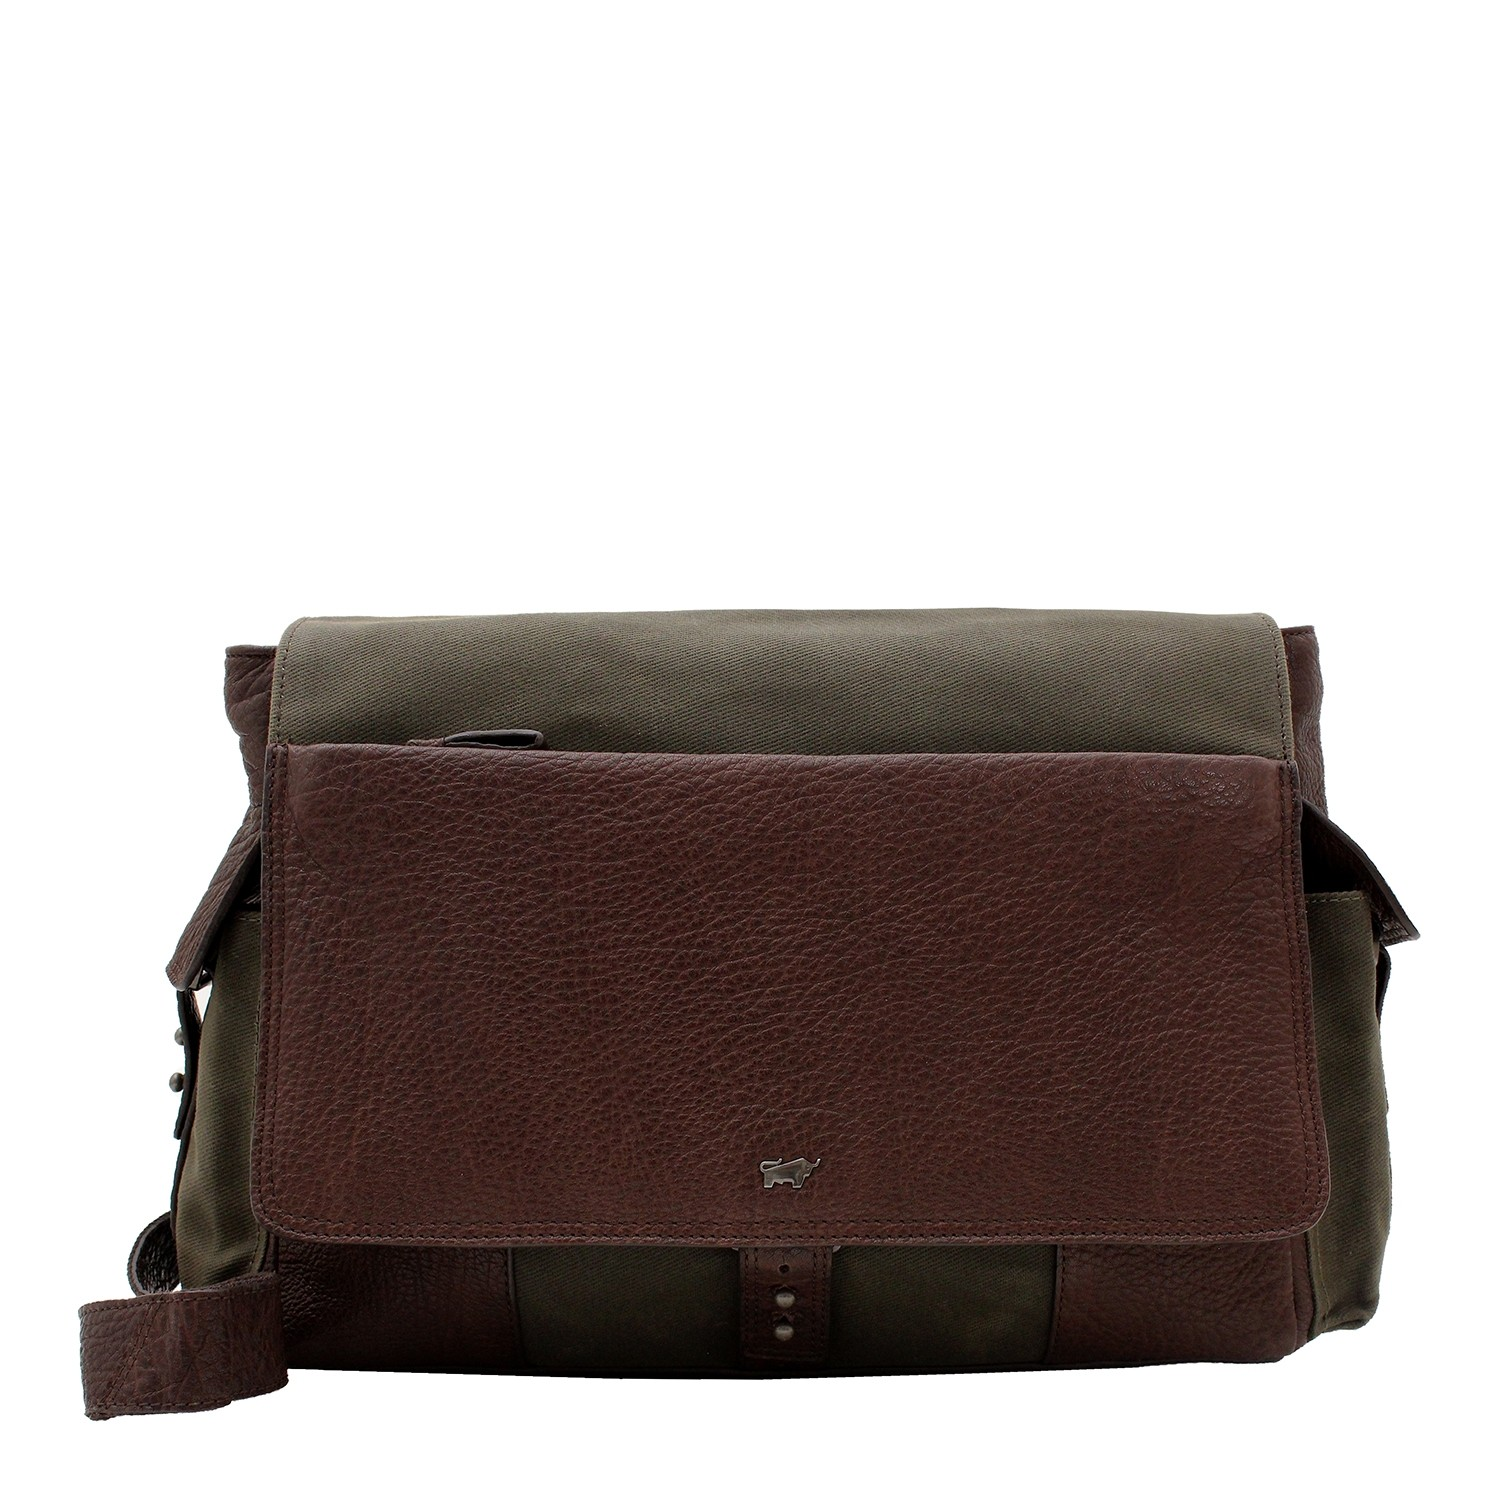 mp-messenger-bag-oak-leave-100% Cotton kombiniert mit Büffelleder-27163-582-092-31